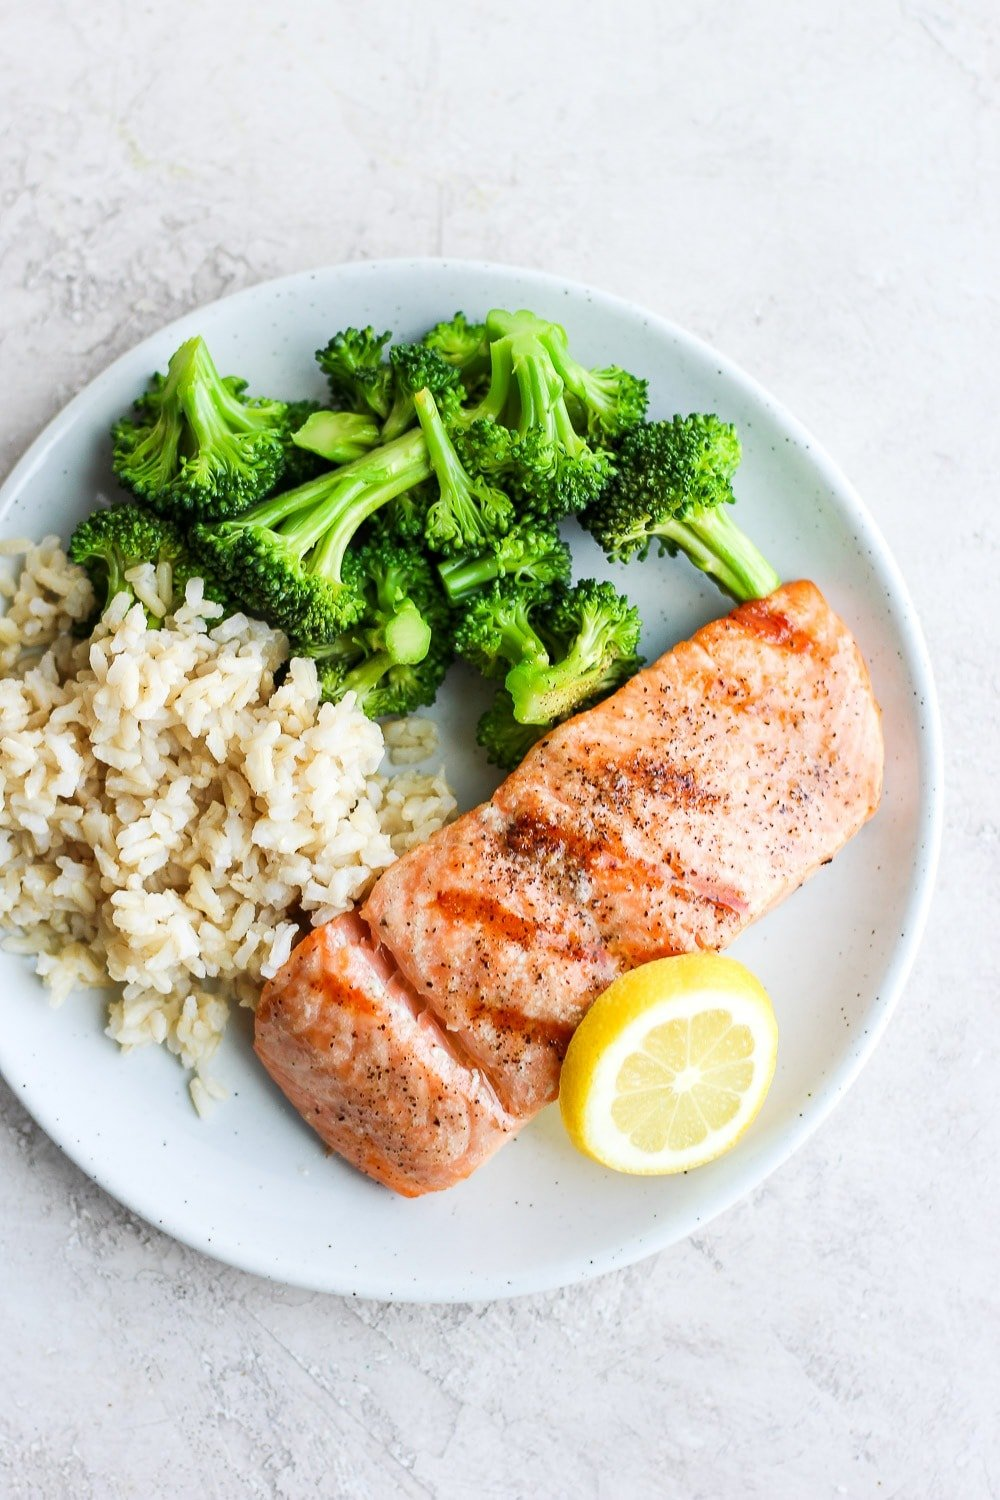 grilled salmon on a plate with broccoli and rice